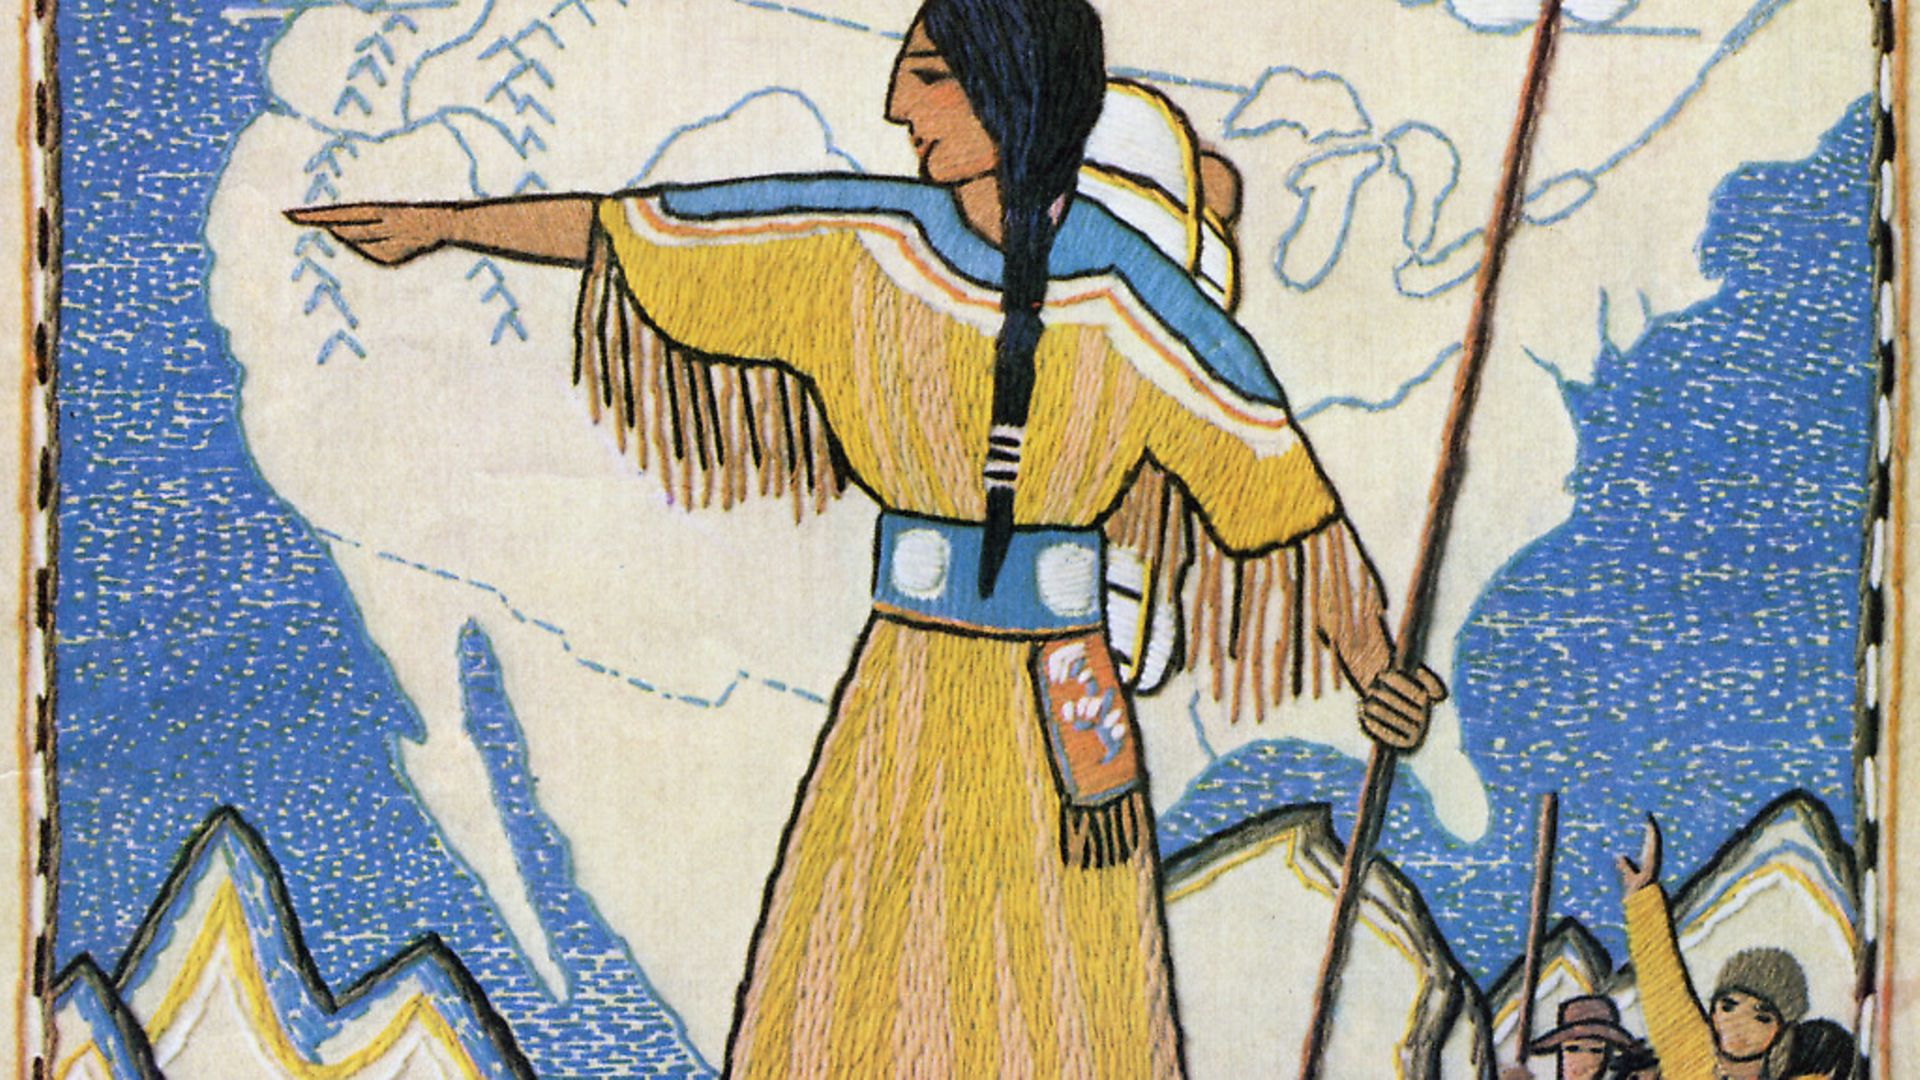 Vintage illustration of Sacajawea on the Lewis and Clark Trail, from the 1804 expedition; screen print, 1933. After a needlepoint design. (Photo by GraphicaArtis/Getty Images) - Credit: Getty Images